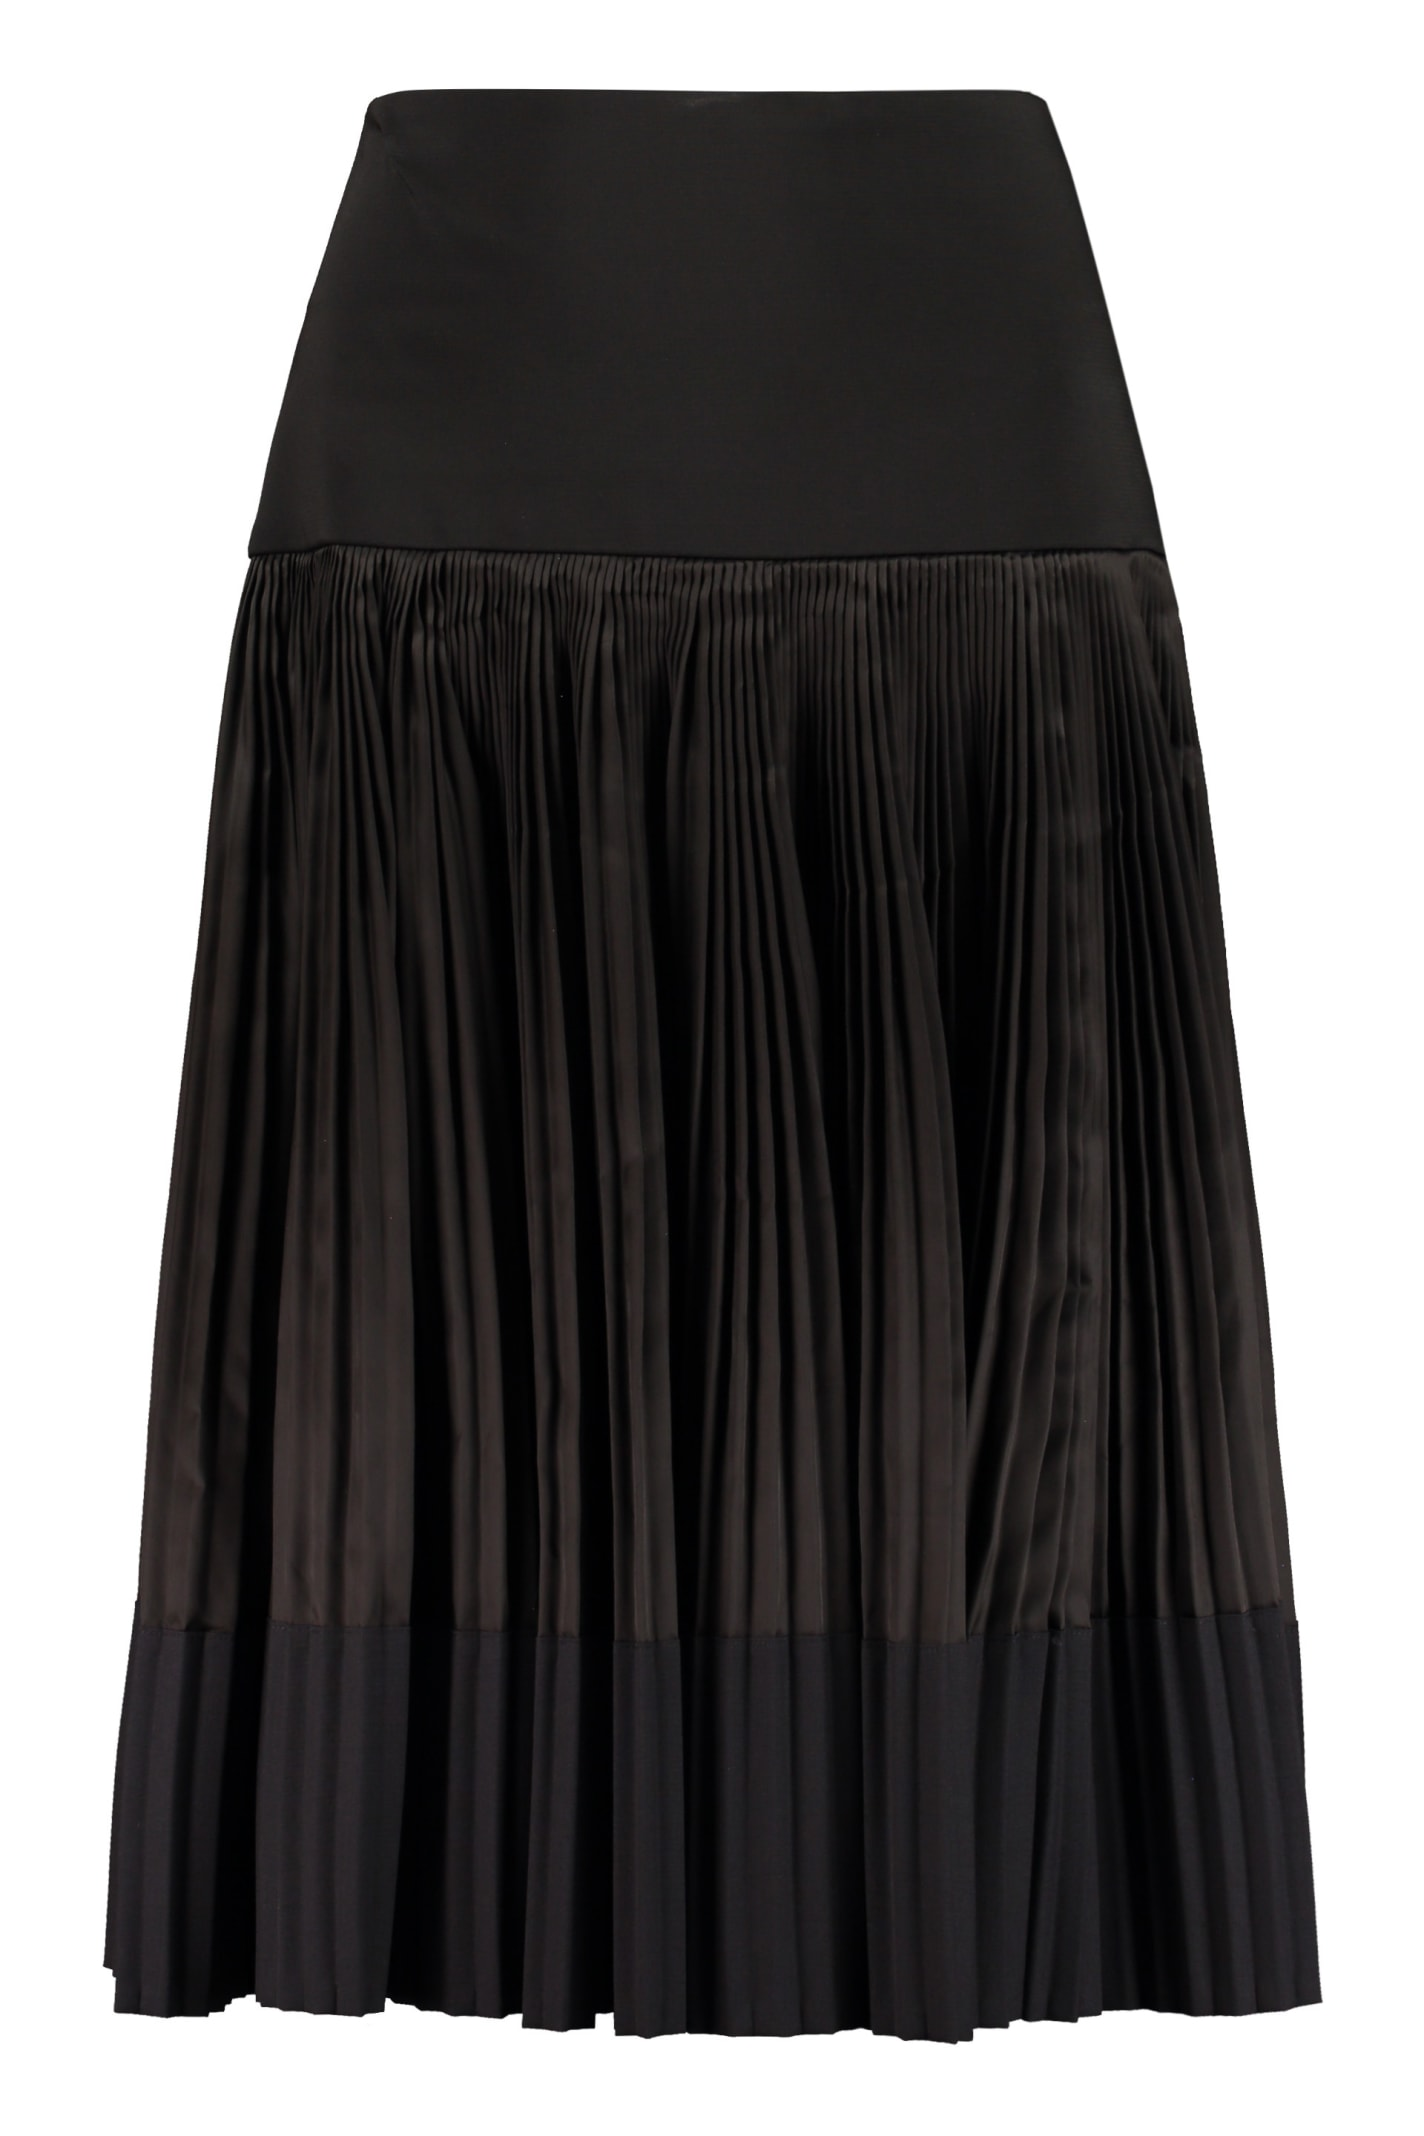 Plan C PLEATED SKIRT